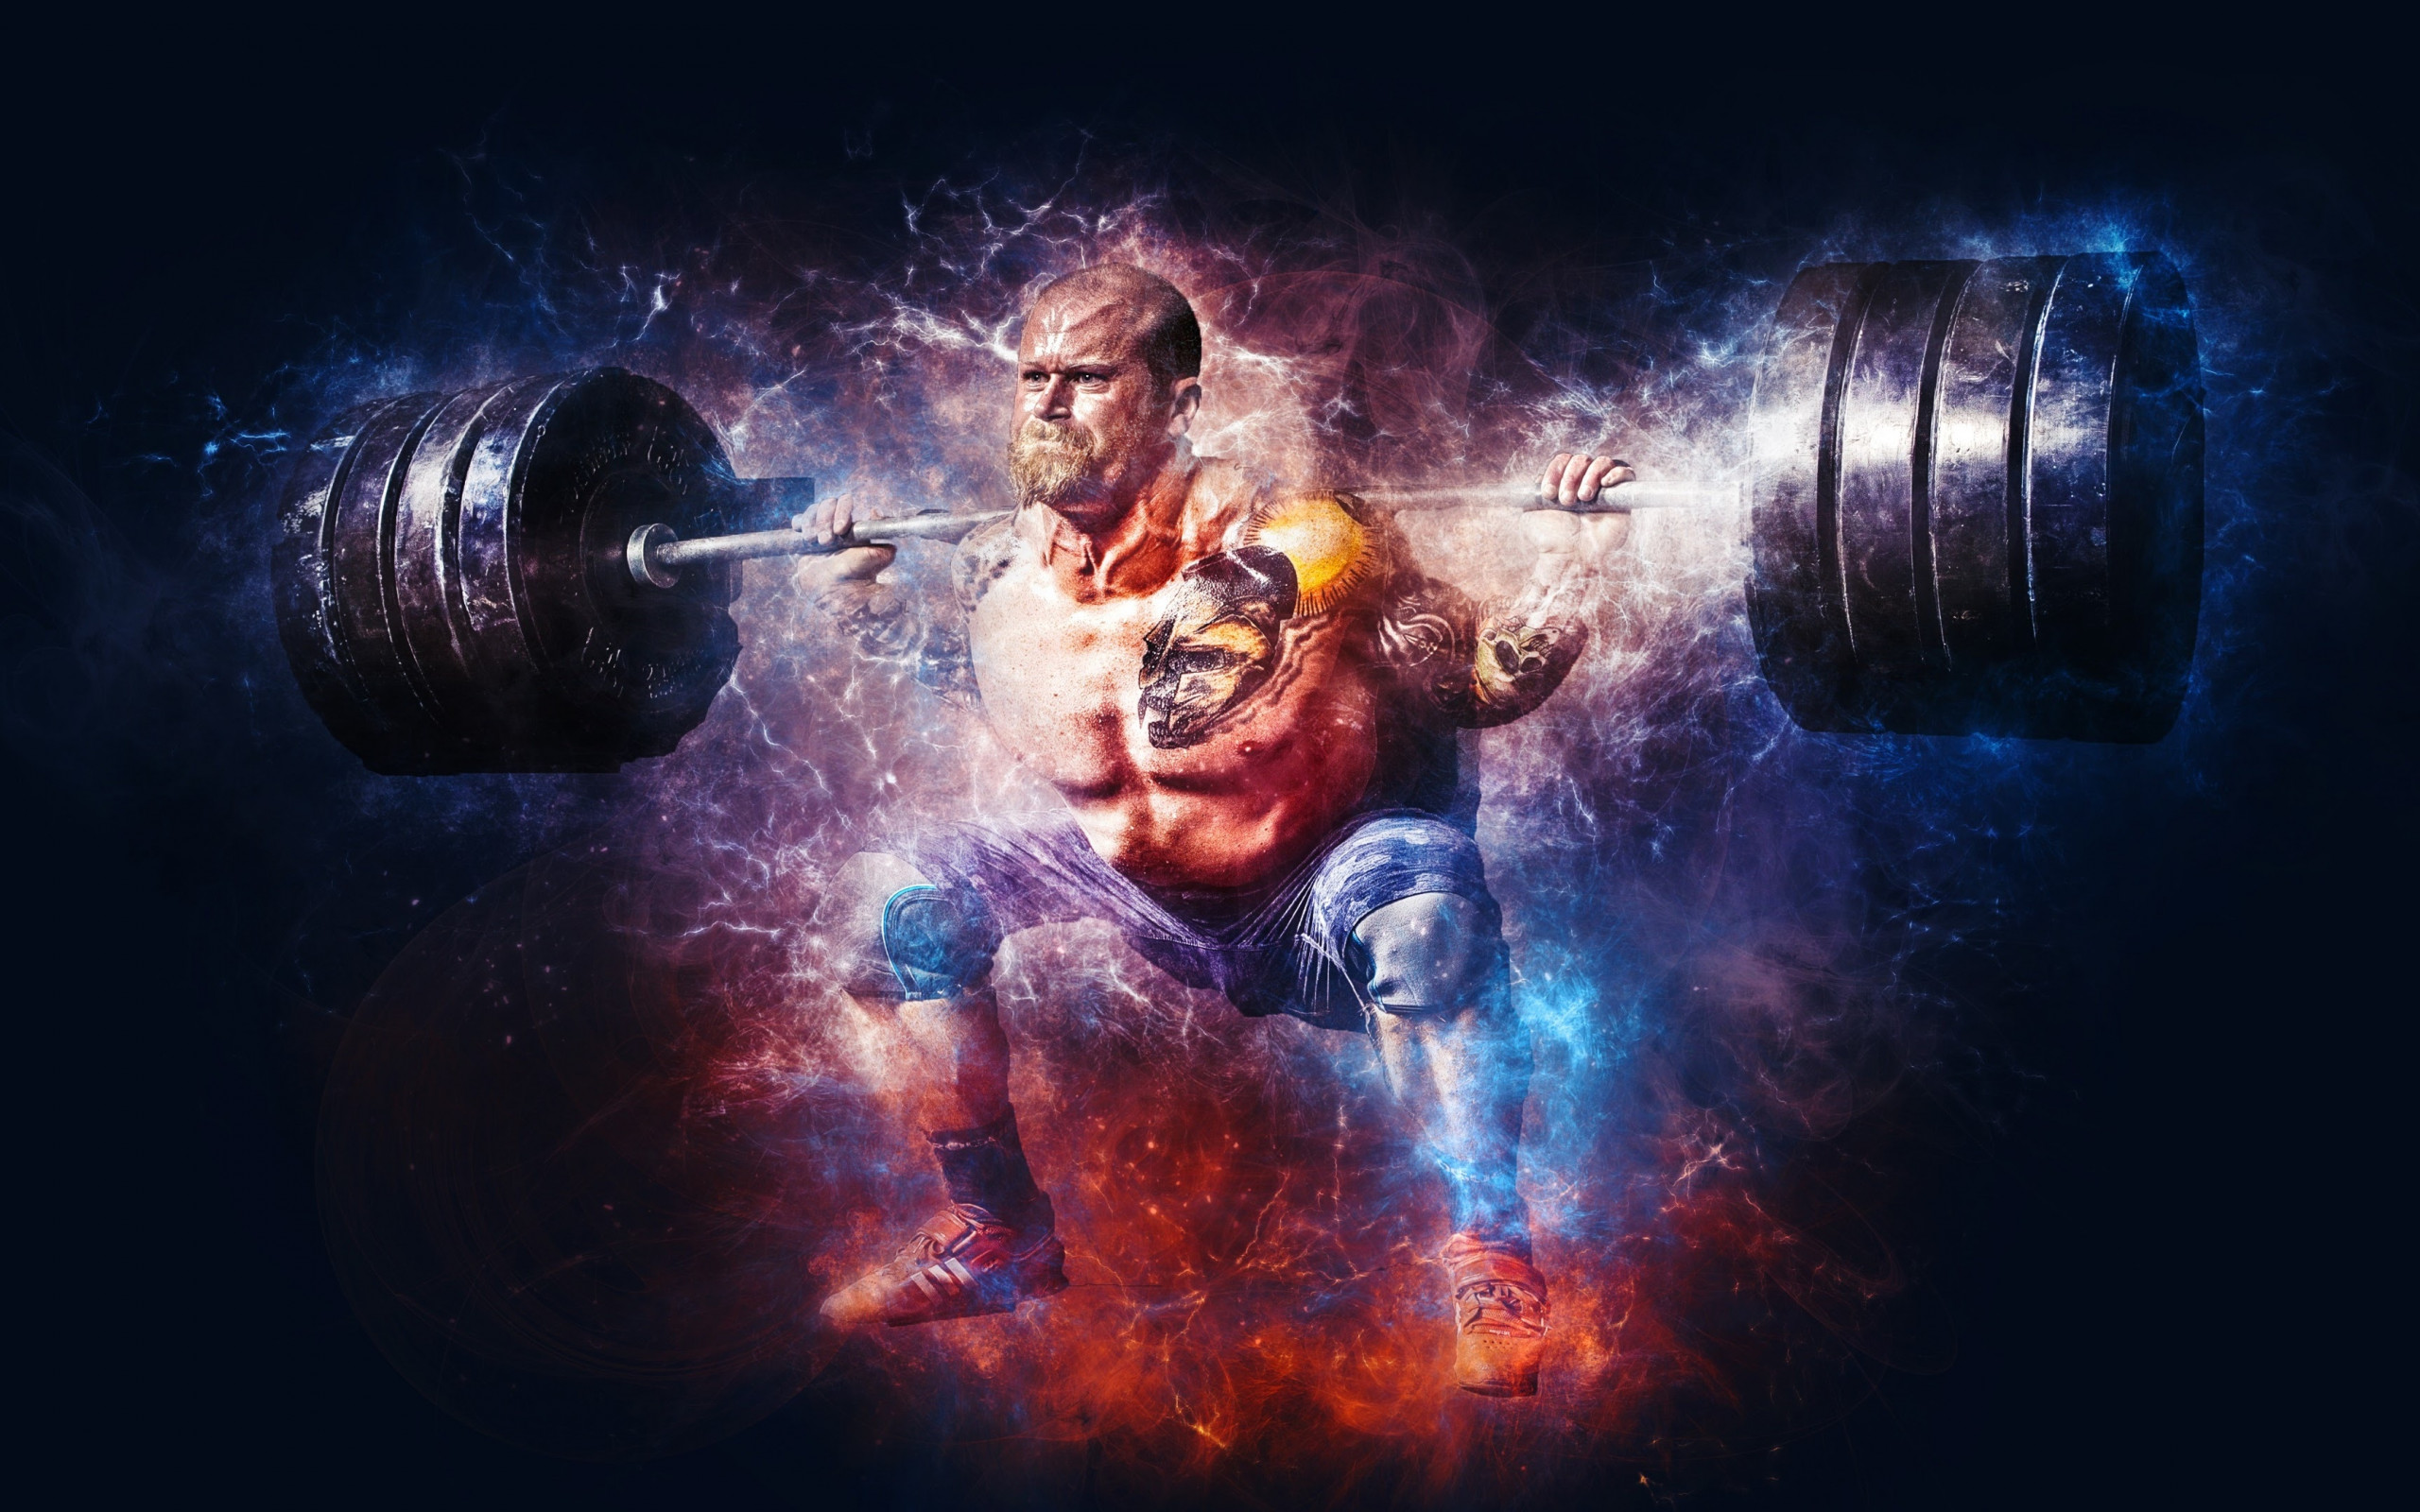 Bodybuilding wallpaper 2560x1600